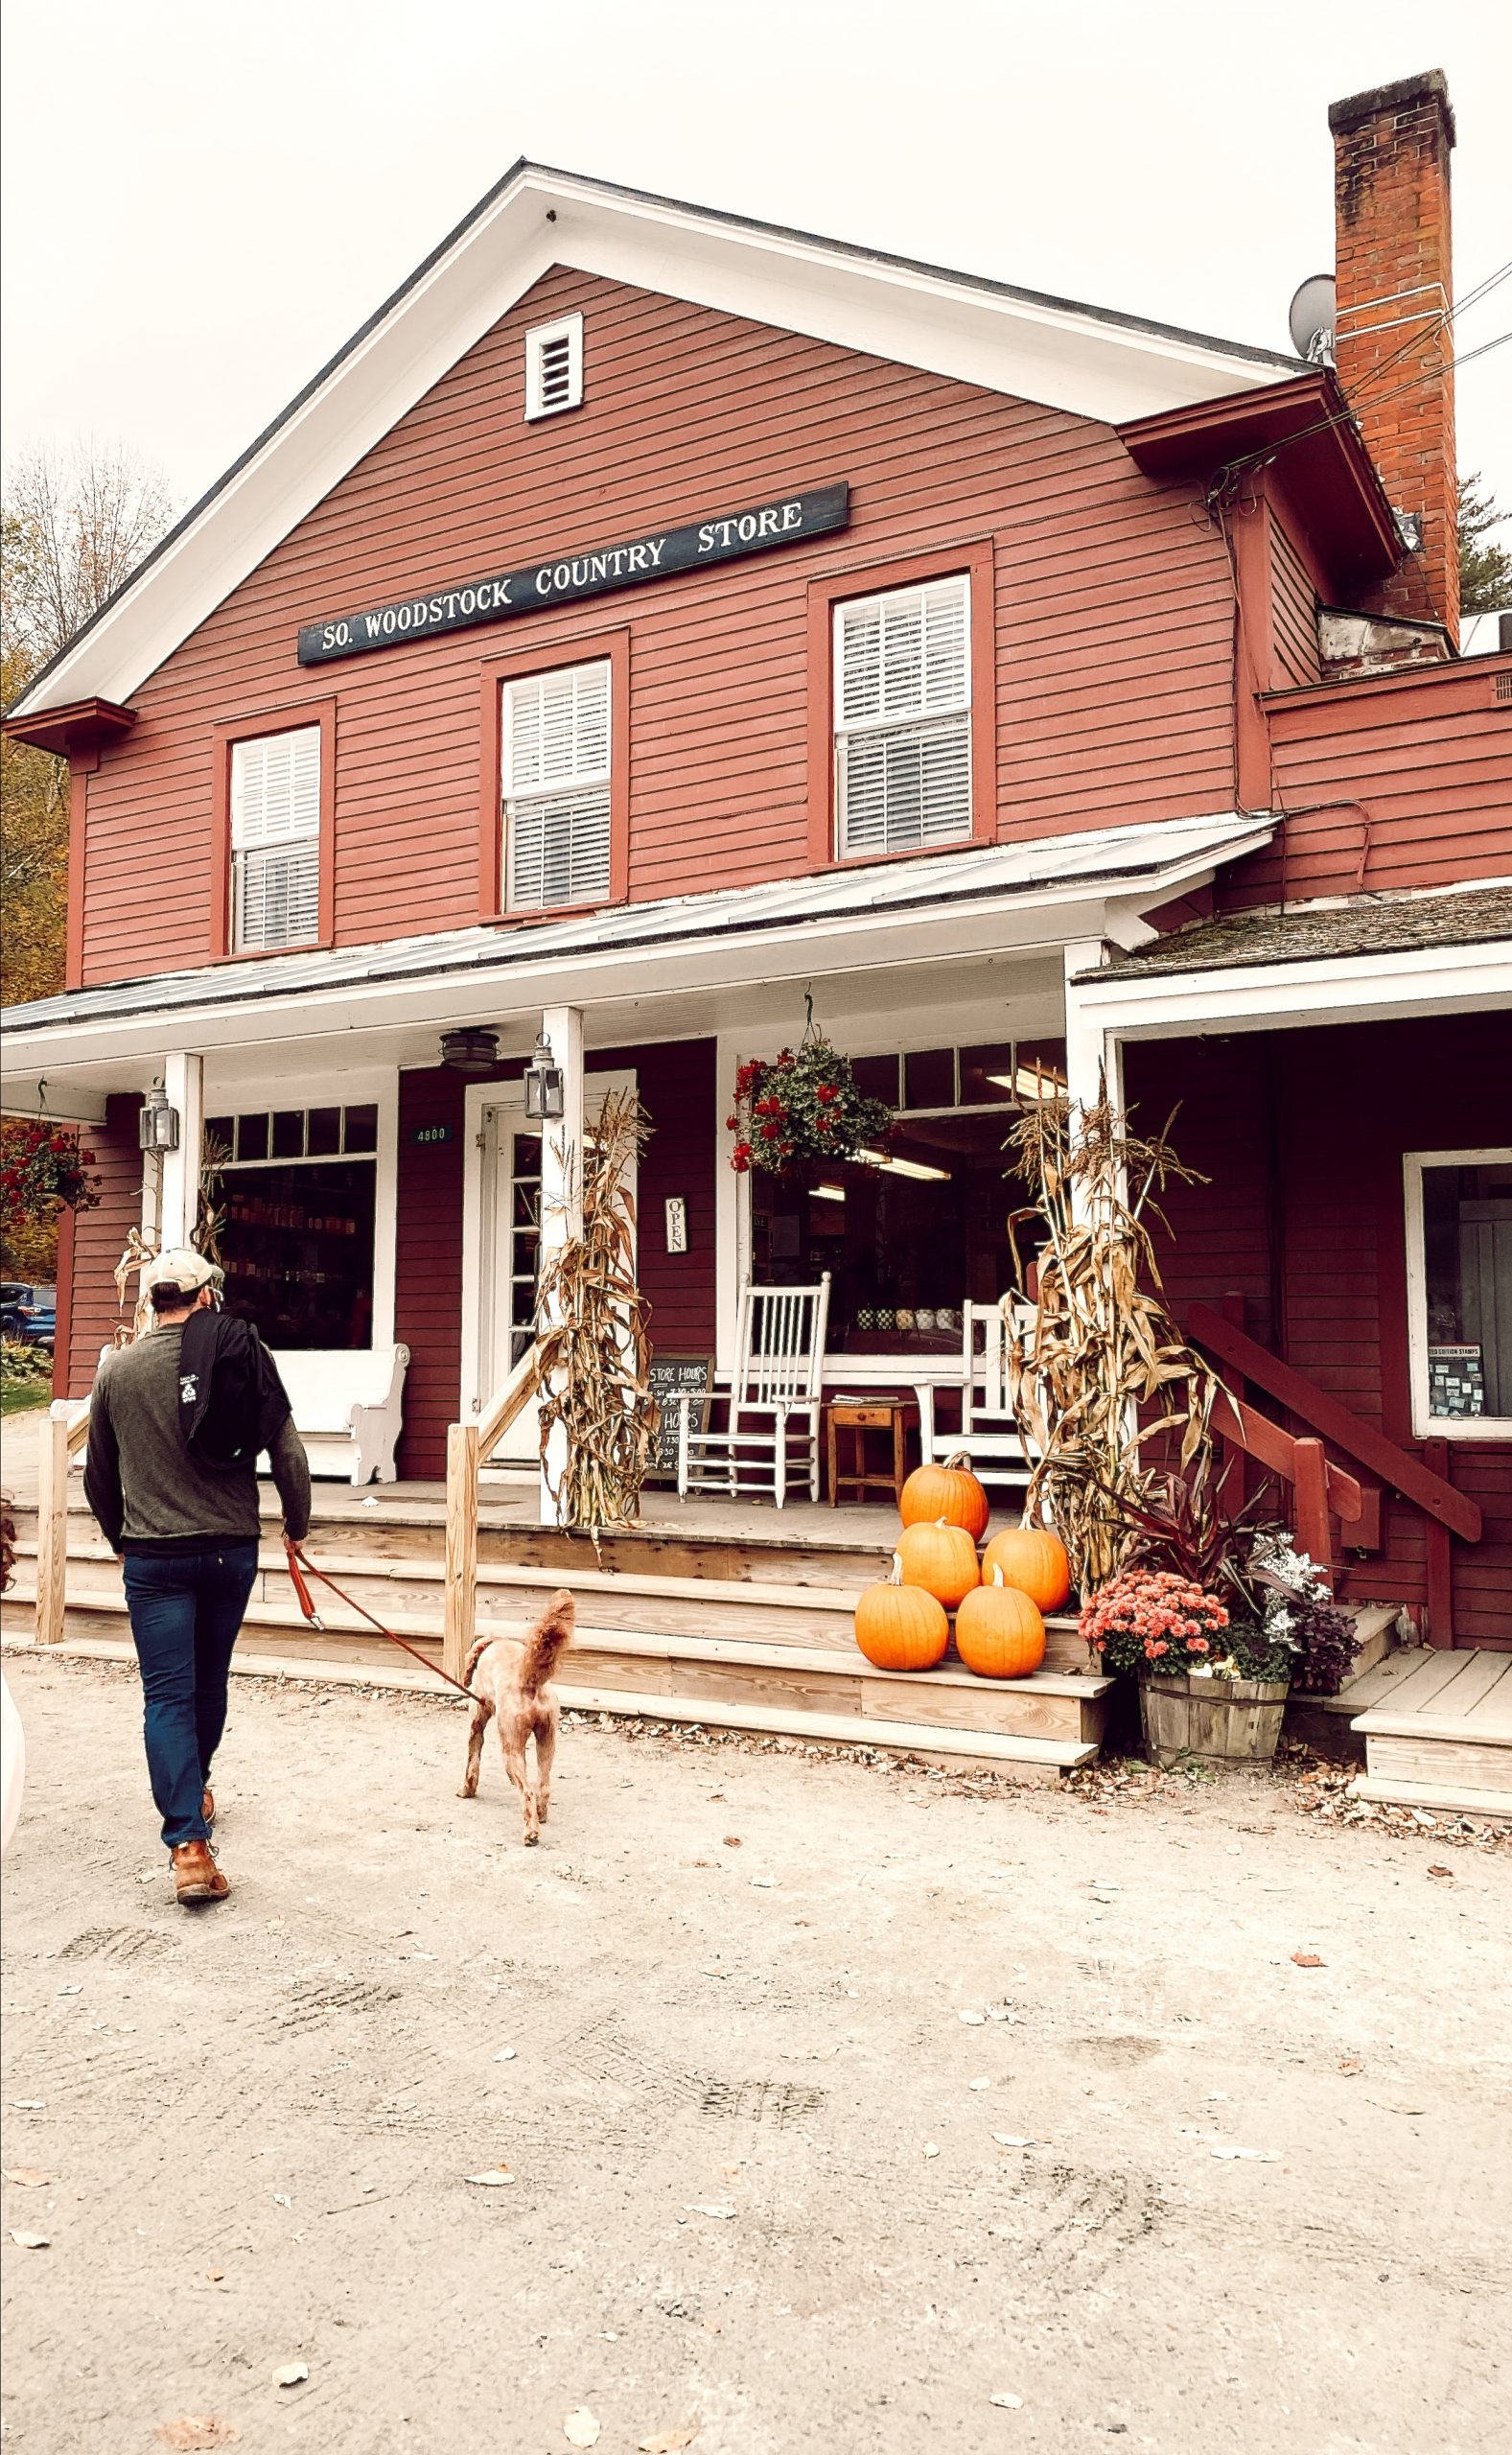 a red country store that says woodstock country store